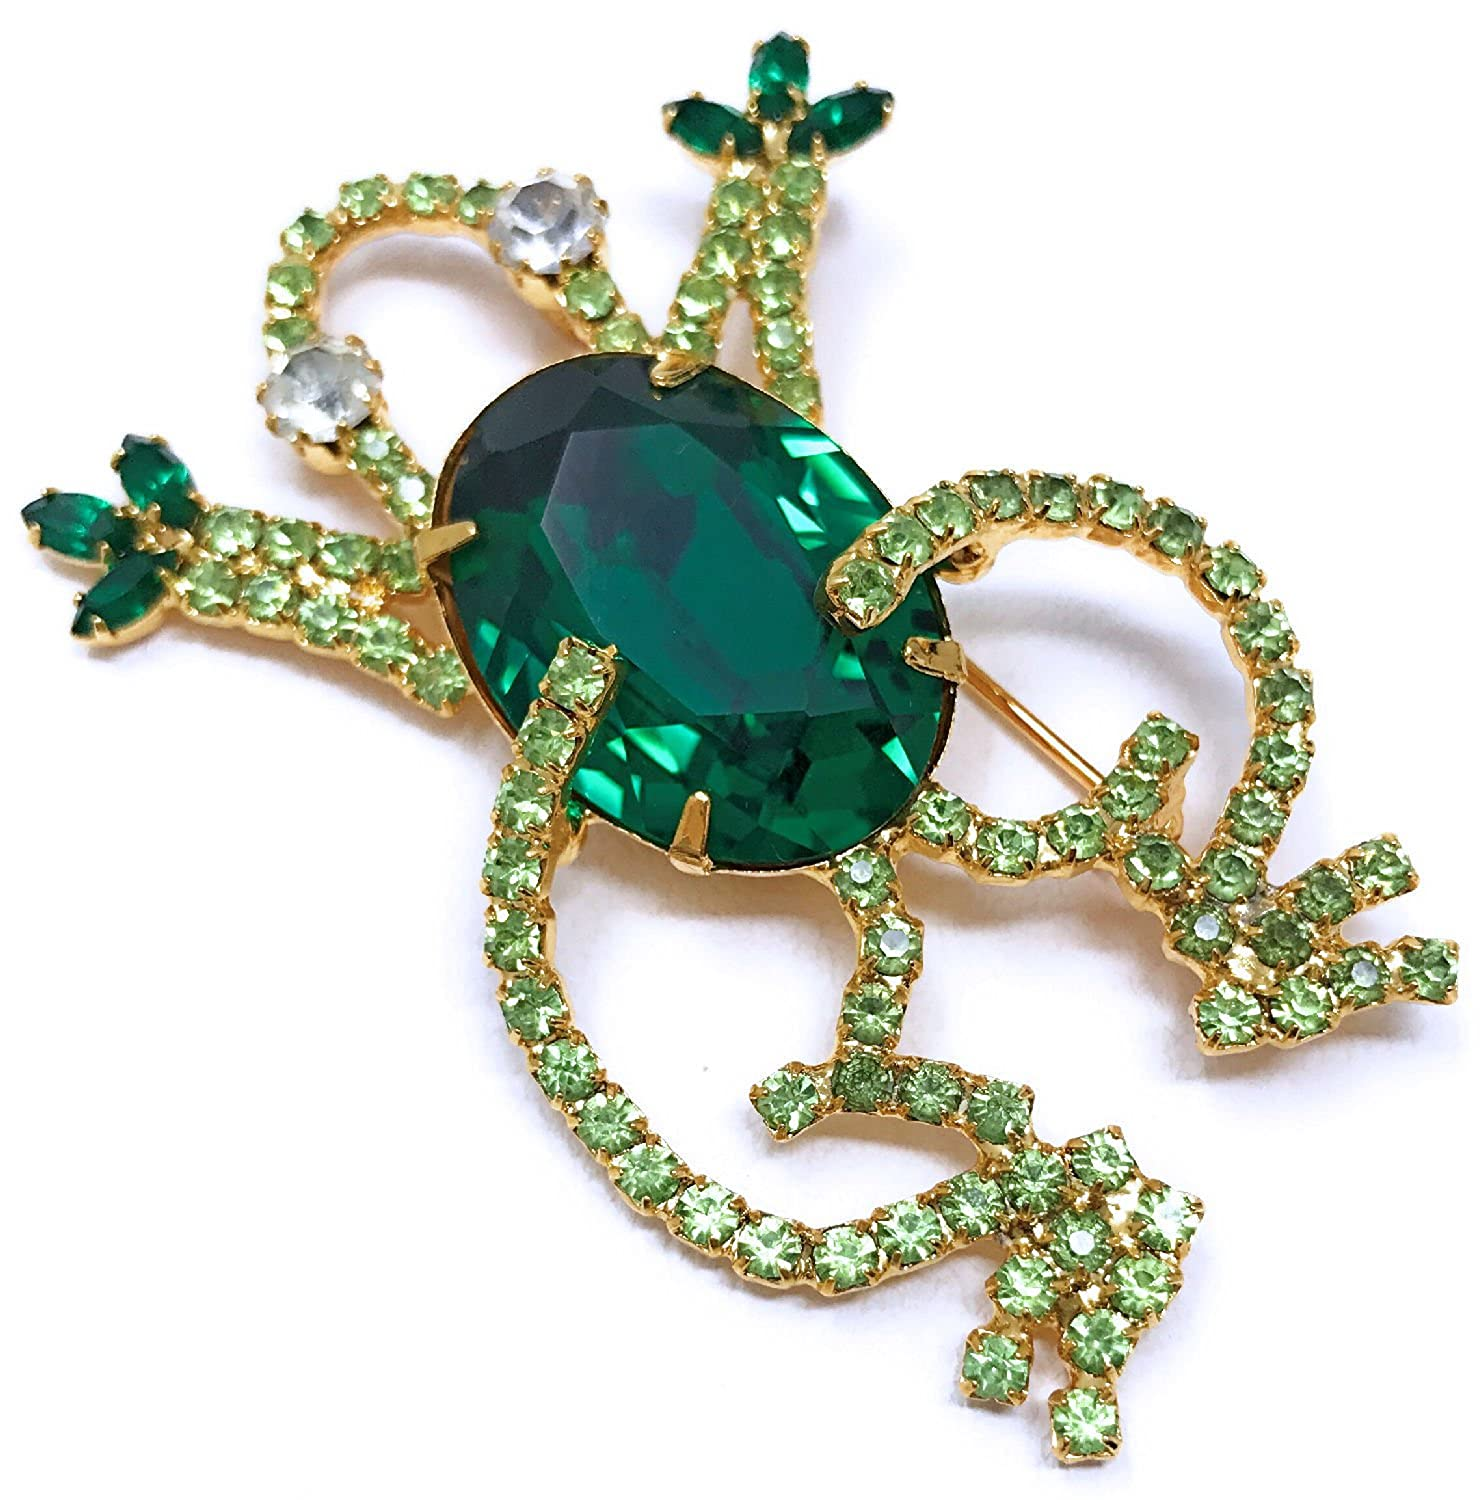 Daves Collections Bejeweled Glitzy Austrian Crystal Gold-Plate Green Frog Brooch 1.75 x 2.5